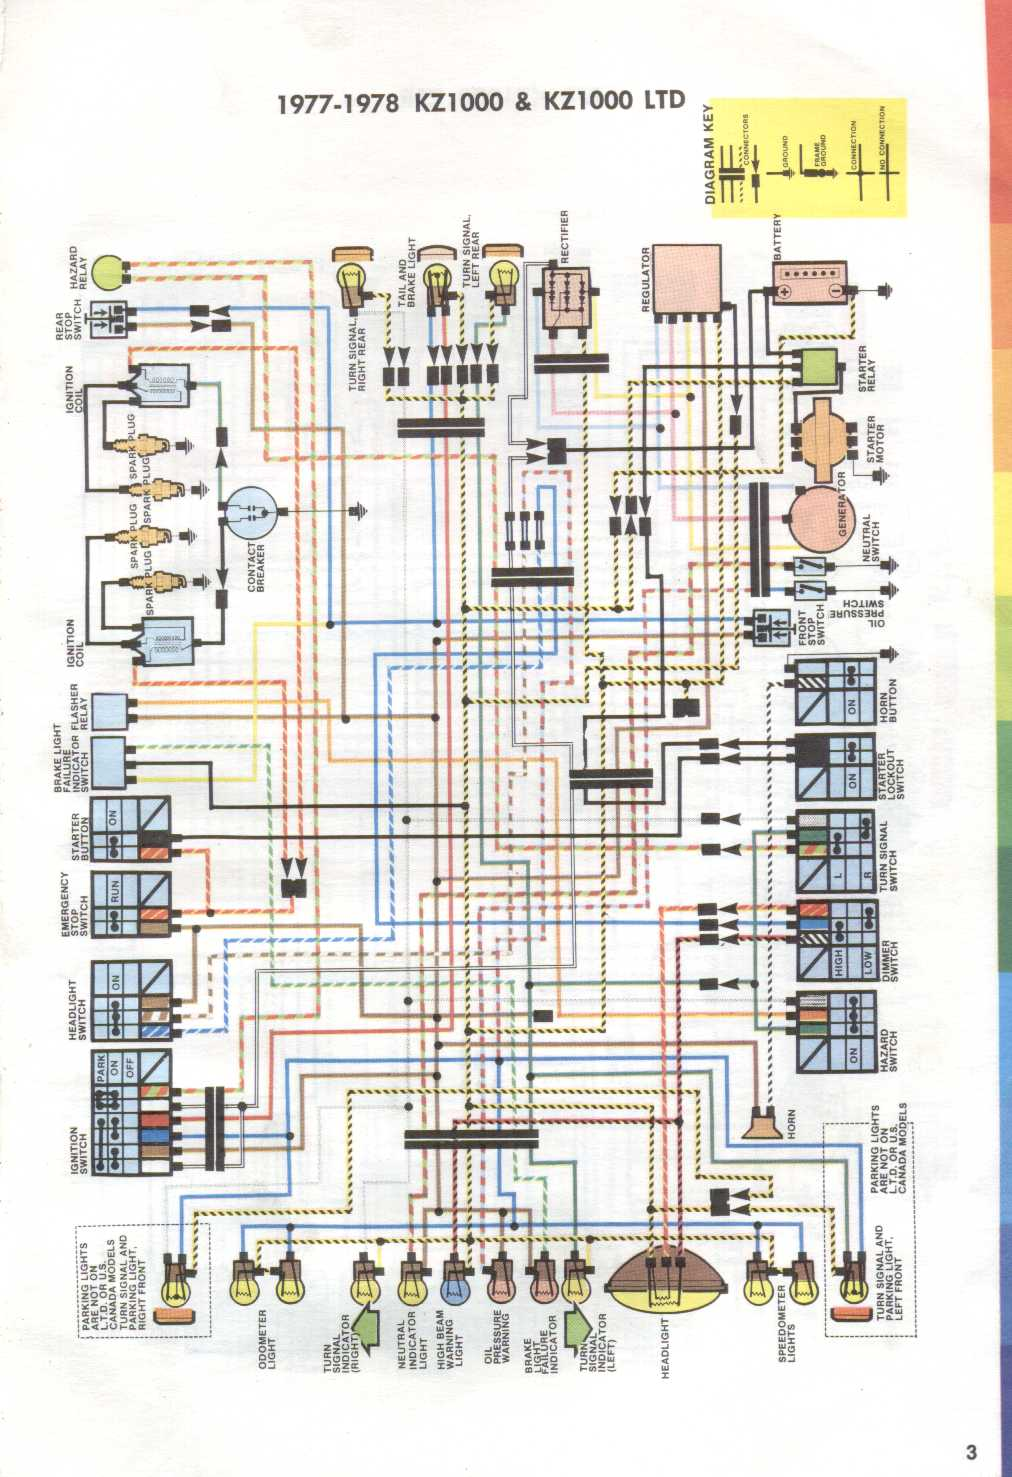 wiring diagram for 1977 1978 kawasaki kz1000 and kz1000 evan color coded wiring diagram for a 1977 1978 kawasaki kz1000 and kz1000 models mar 30